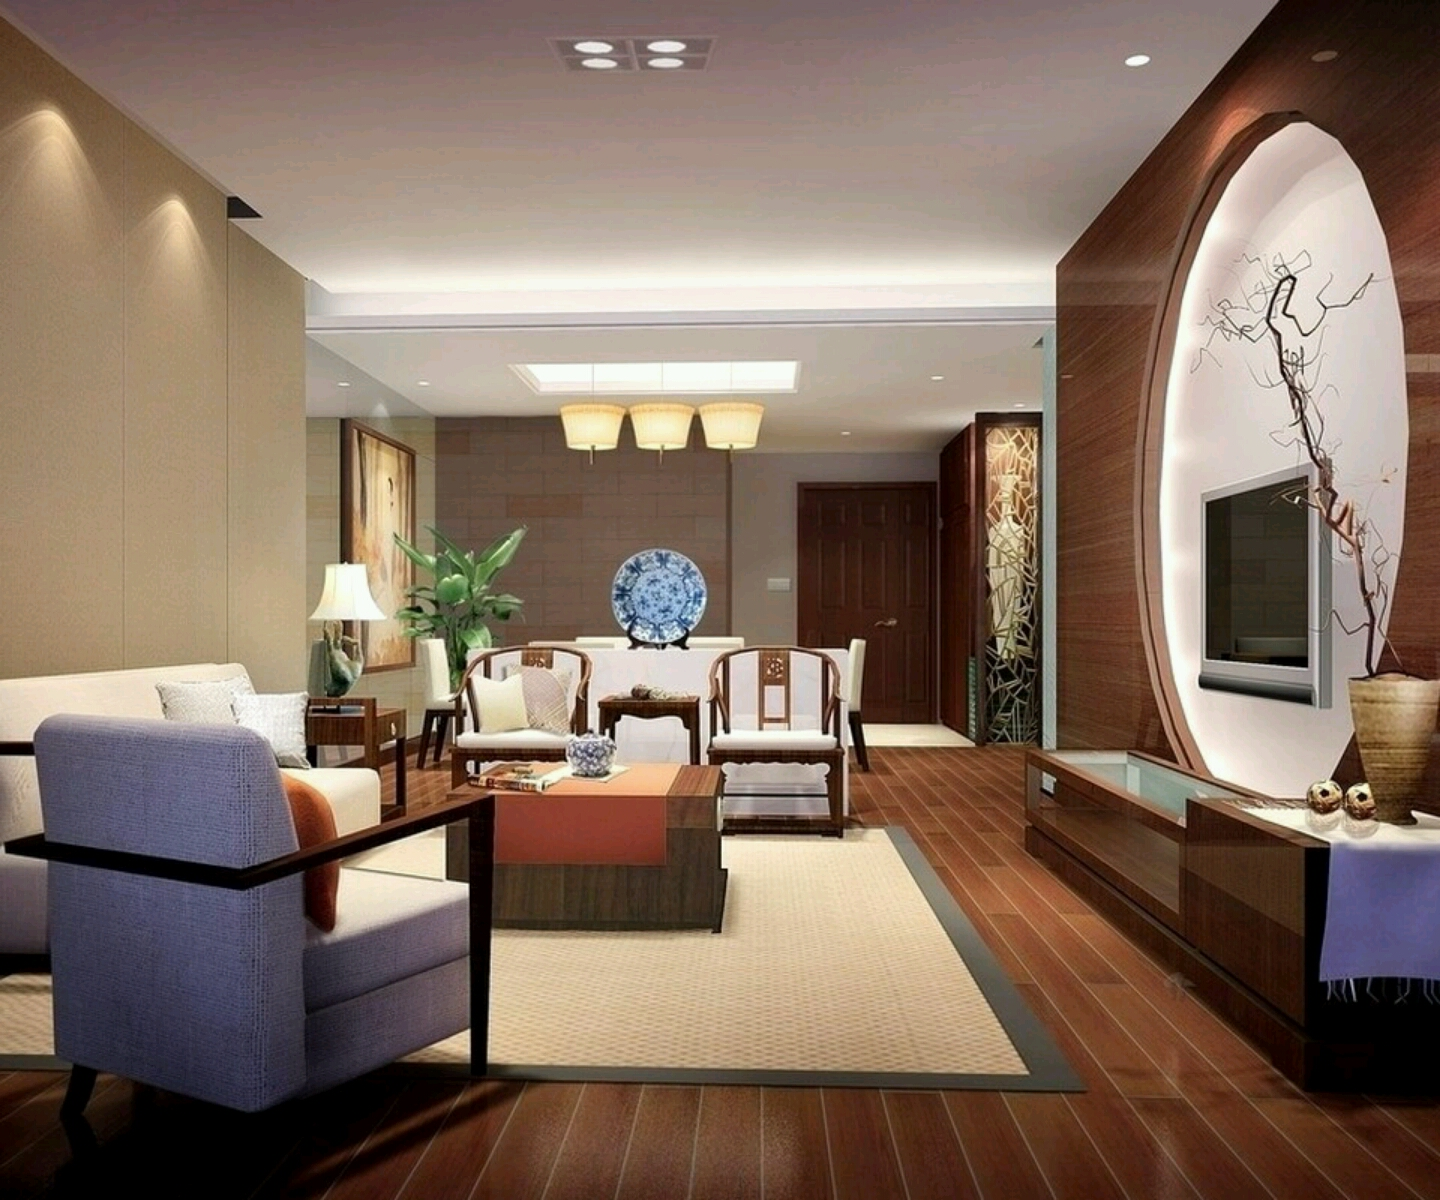 Luxury homes interior decoration living room designs ideas for Drawing room interior ideas